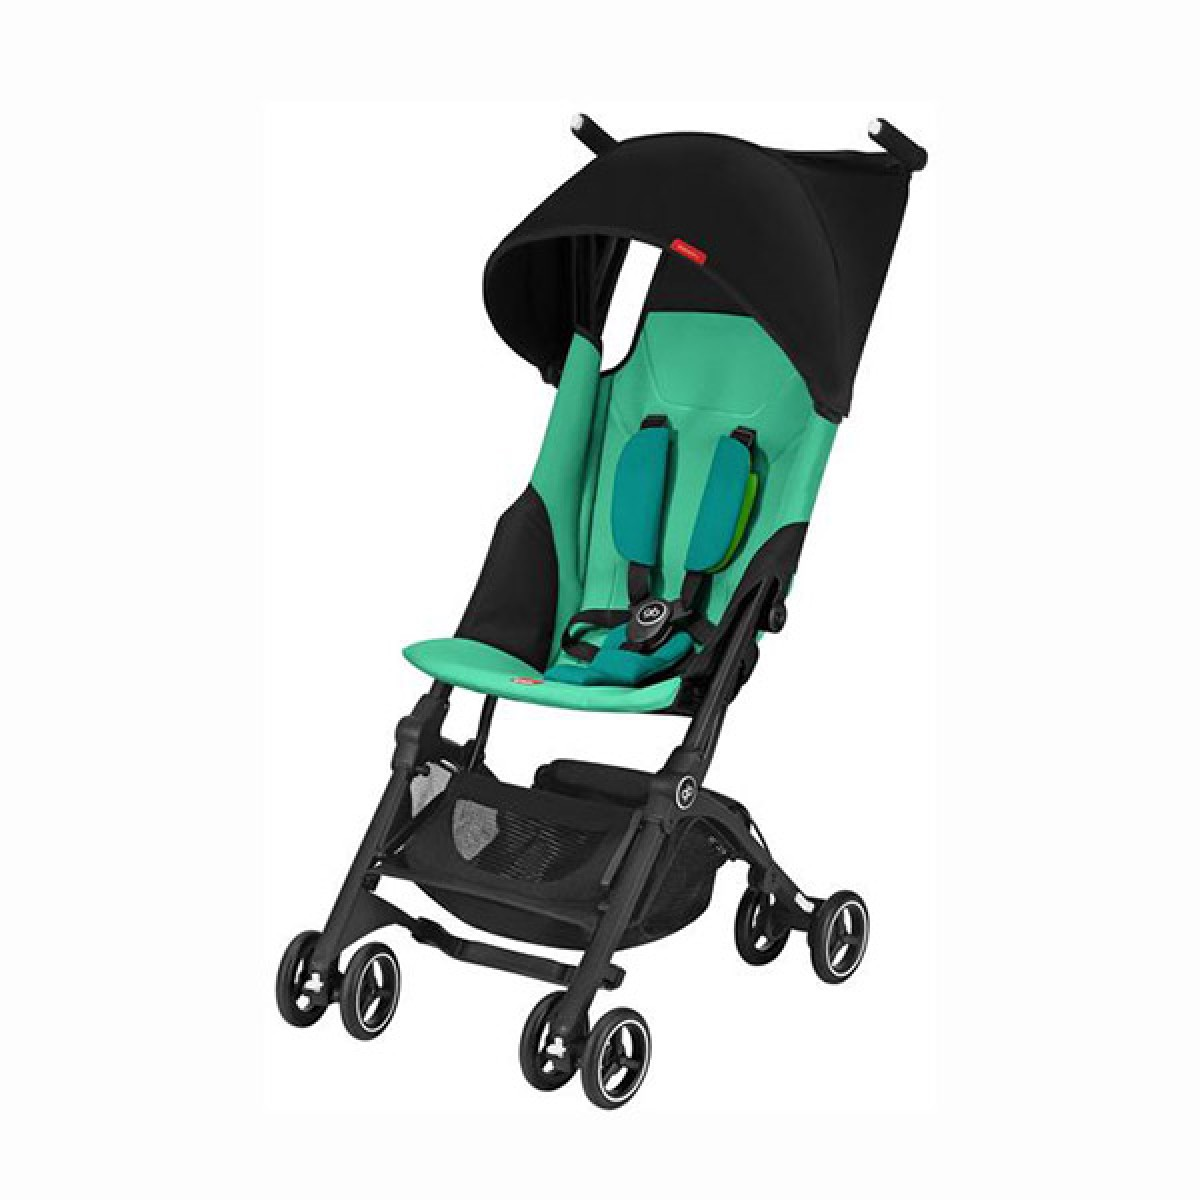 GOLD POCKIT PLUS COMPACT STROLLER - Kico Baby Center